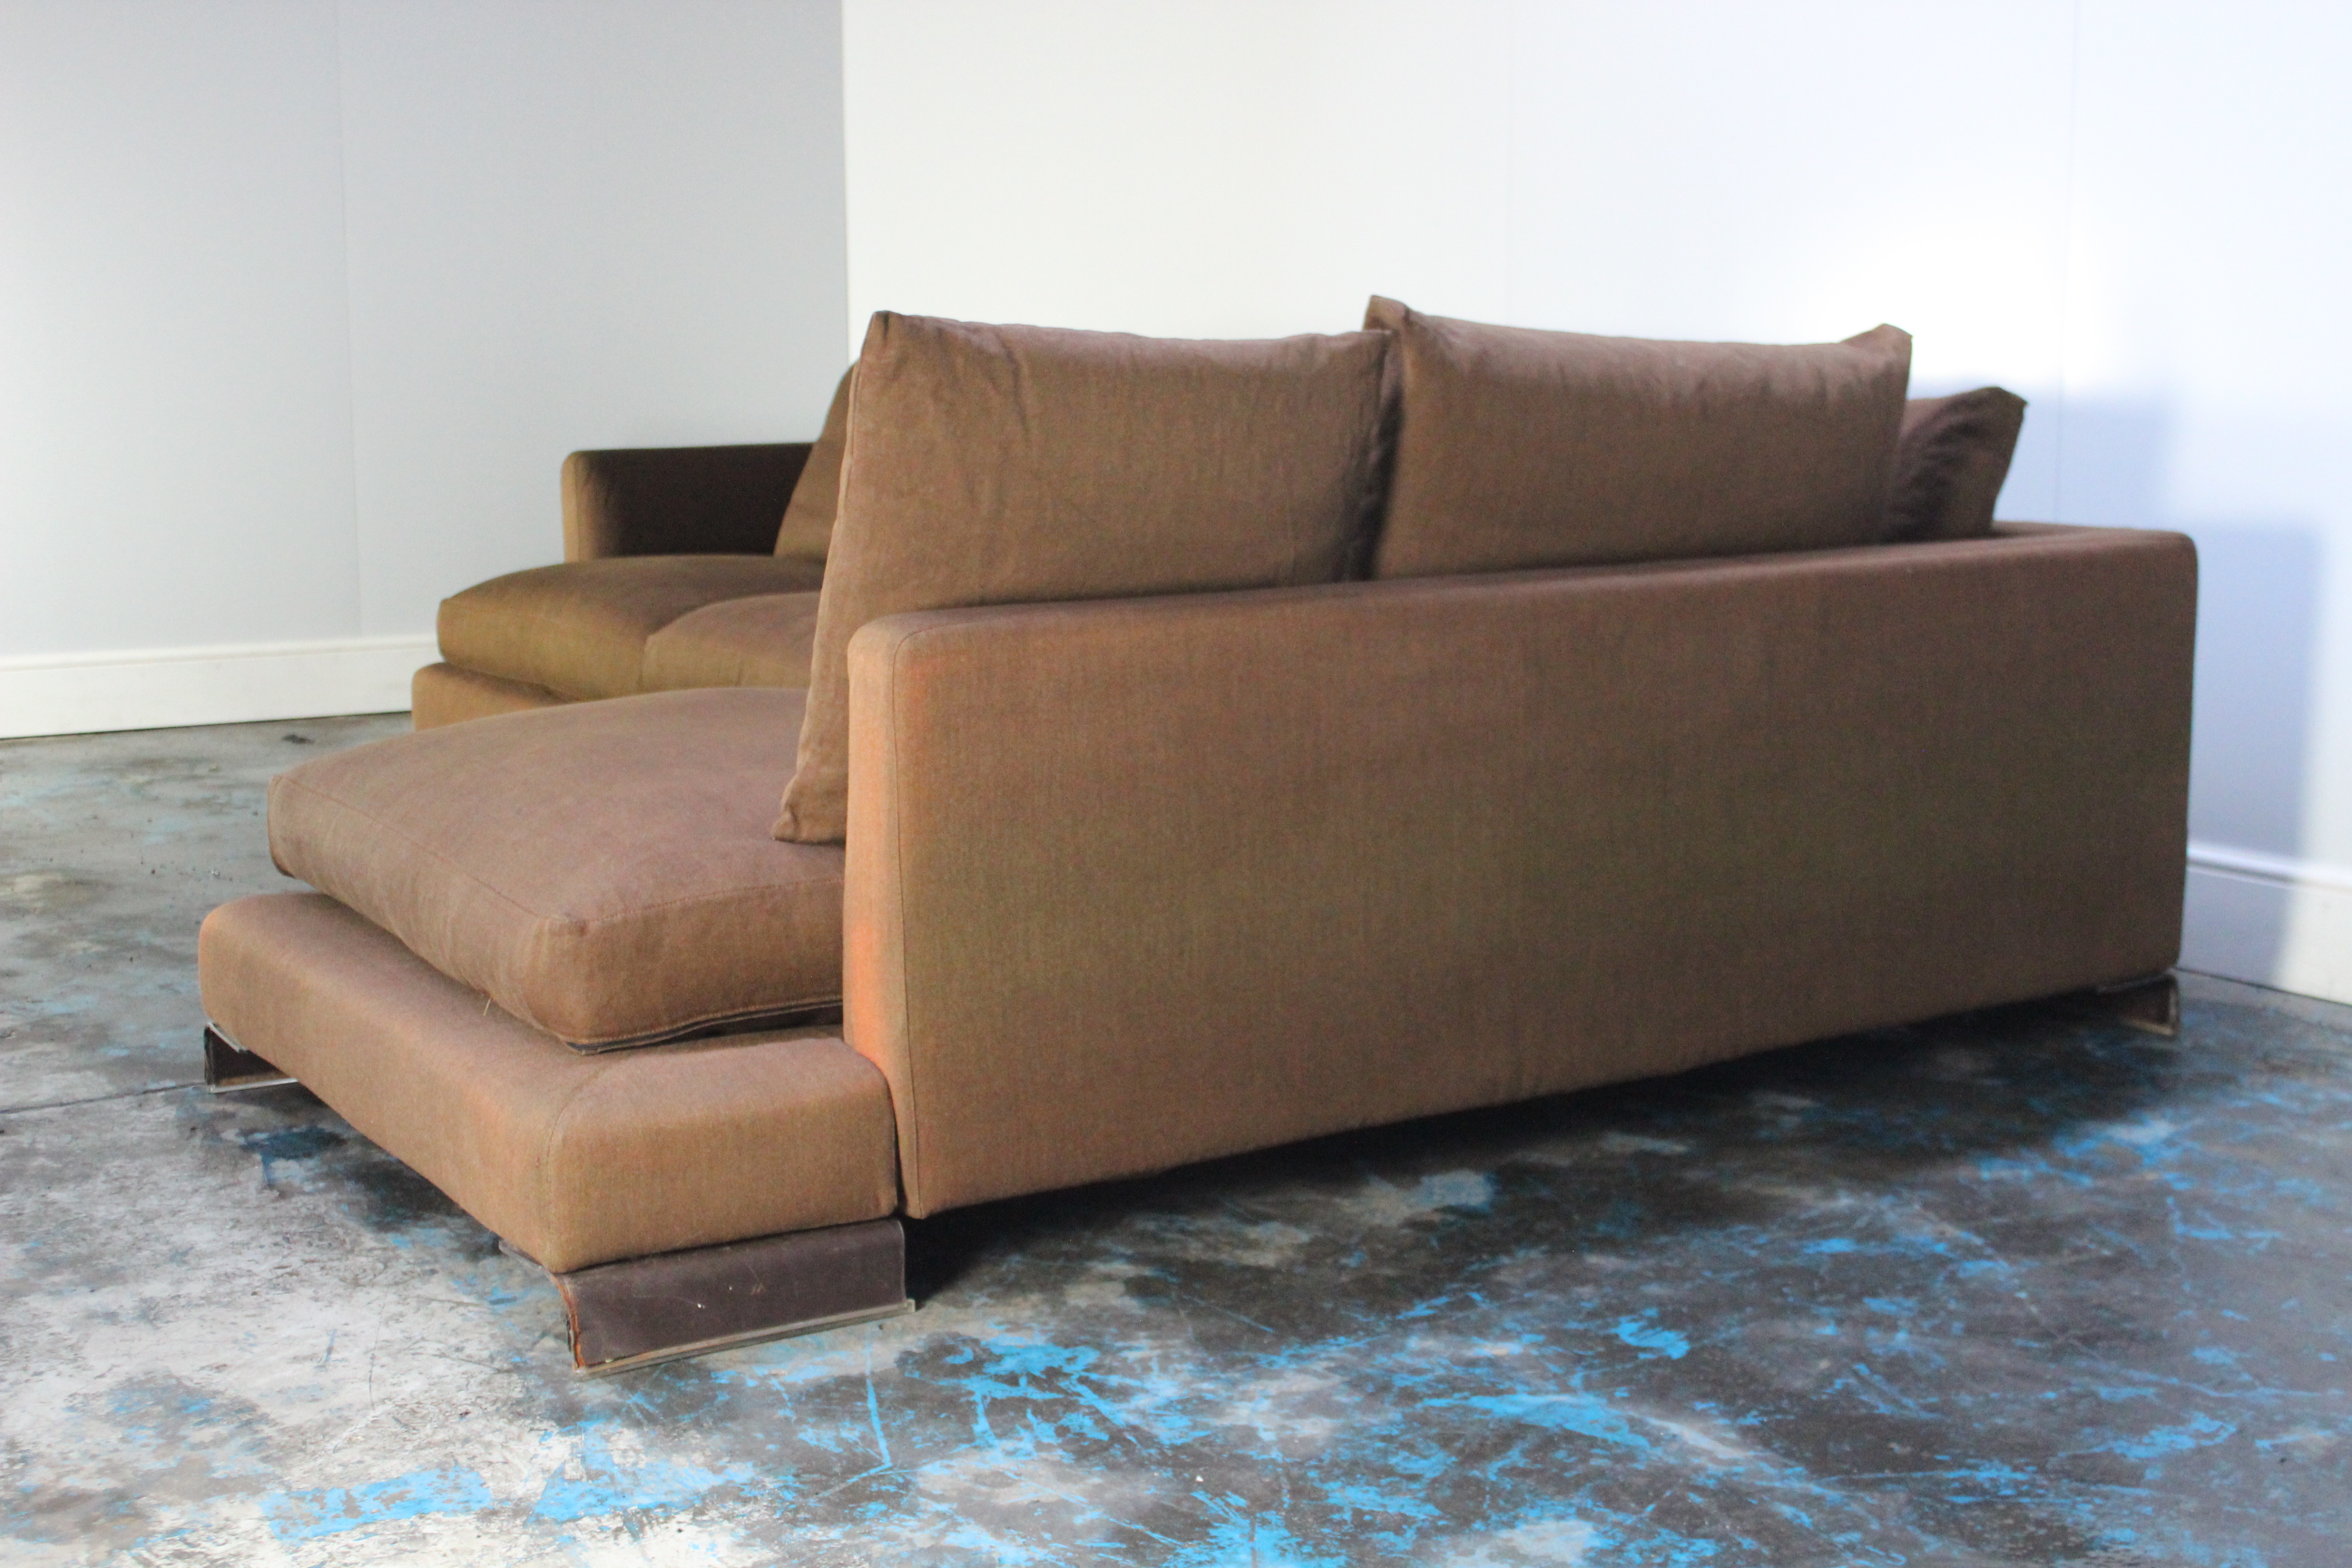 Groovy Details About Peerless Huge Flexform Long Island Sectional L Shape Sofa In Mid Brown Linen Onthecornerstone Fun Painted Chair Ideas Images Onthecornerstoneorg